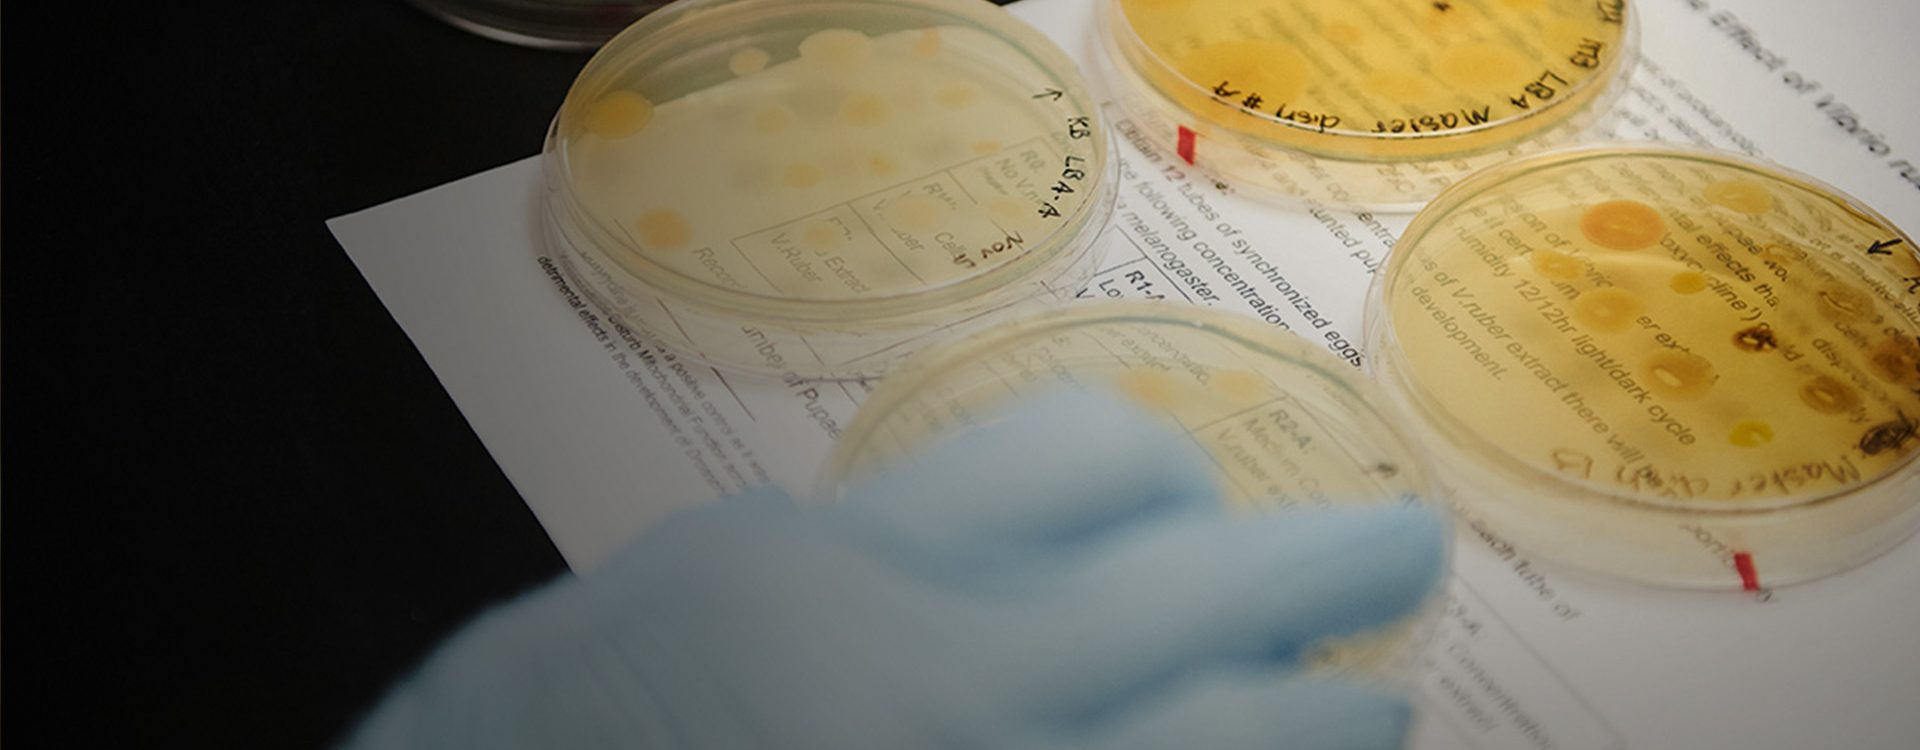 Petri dishes in a lab